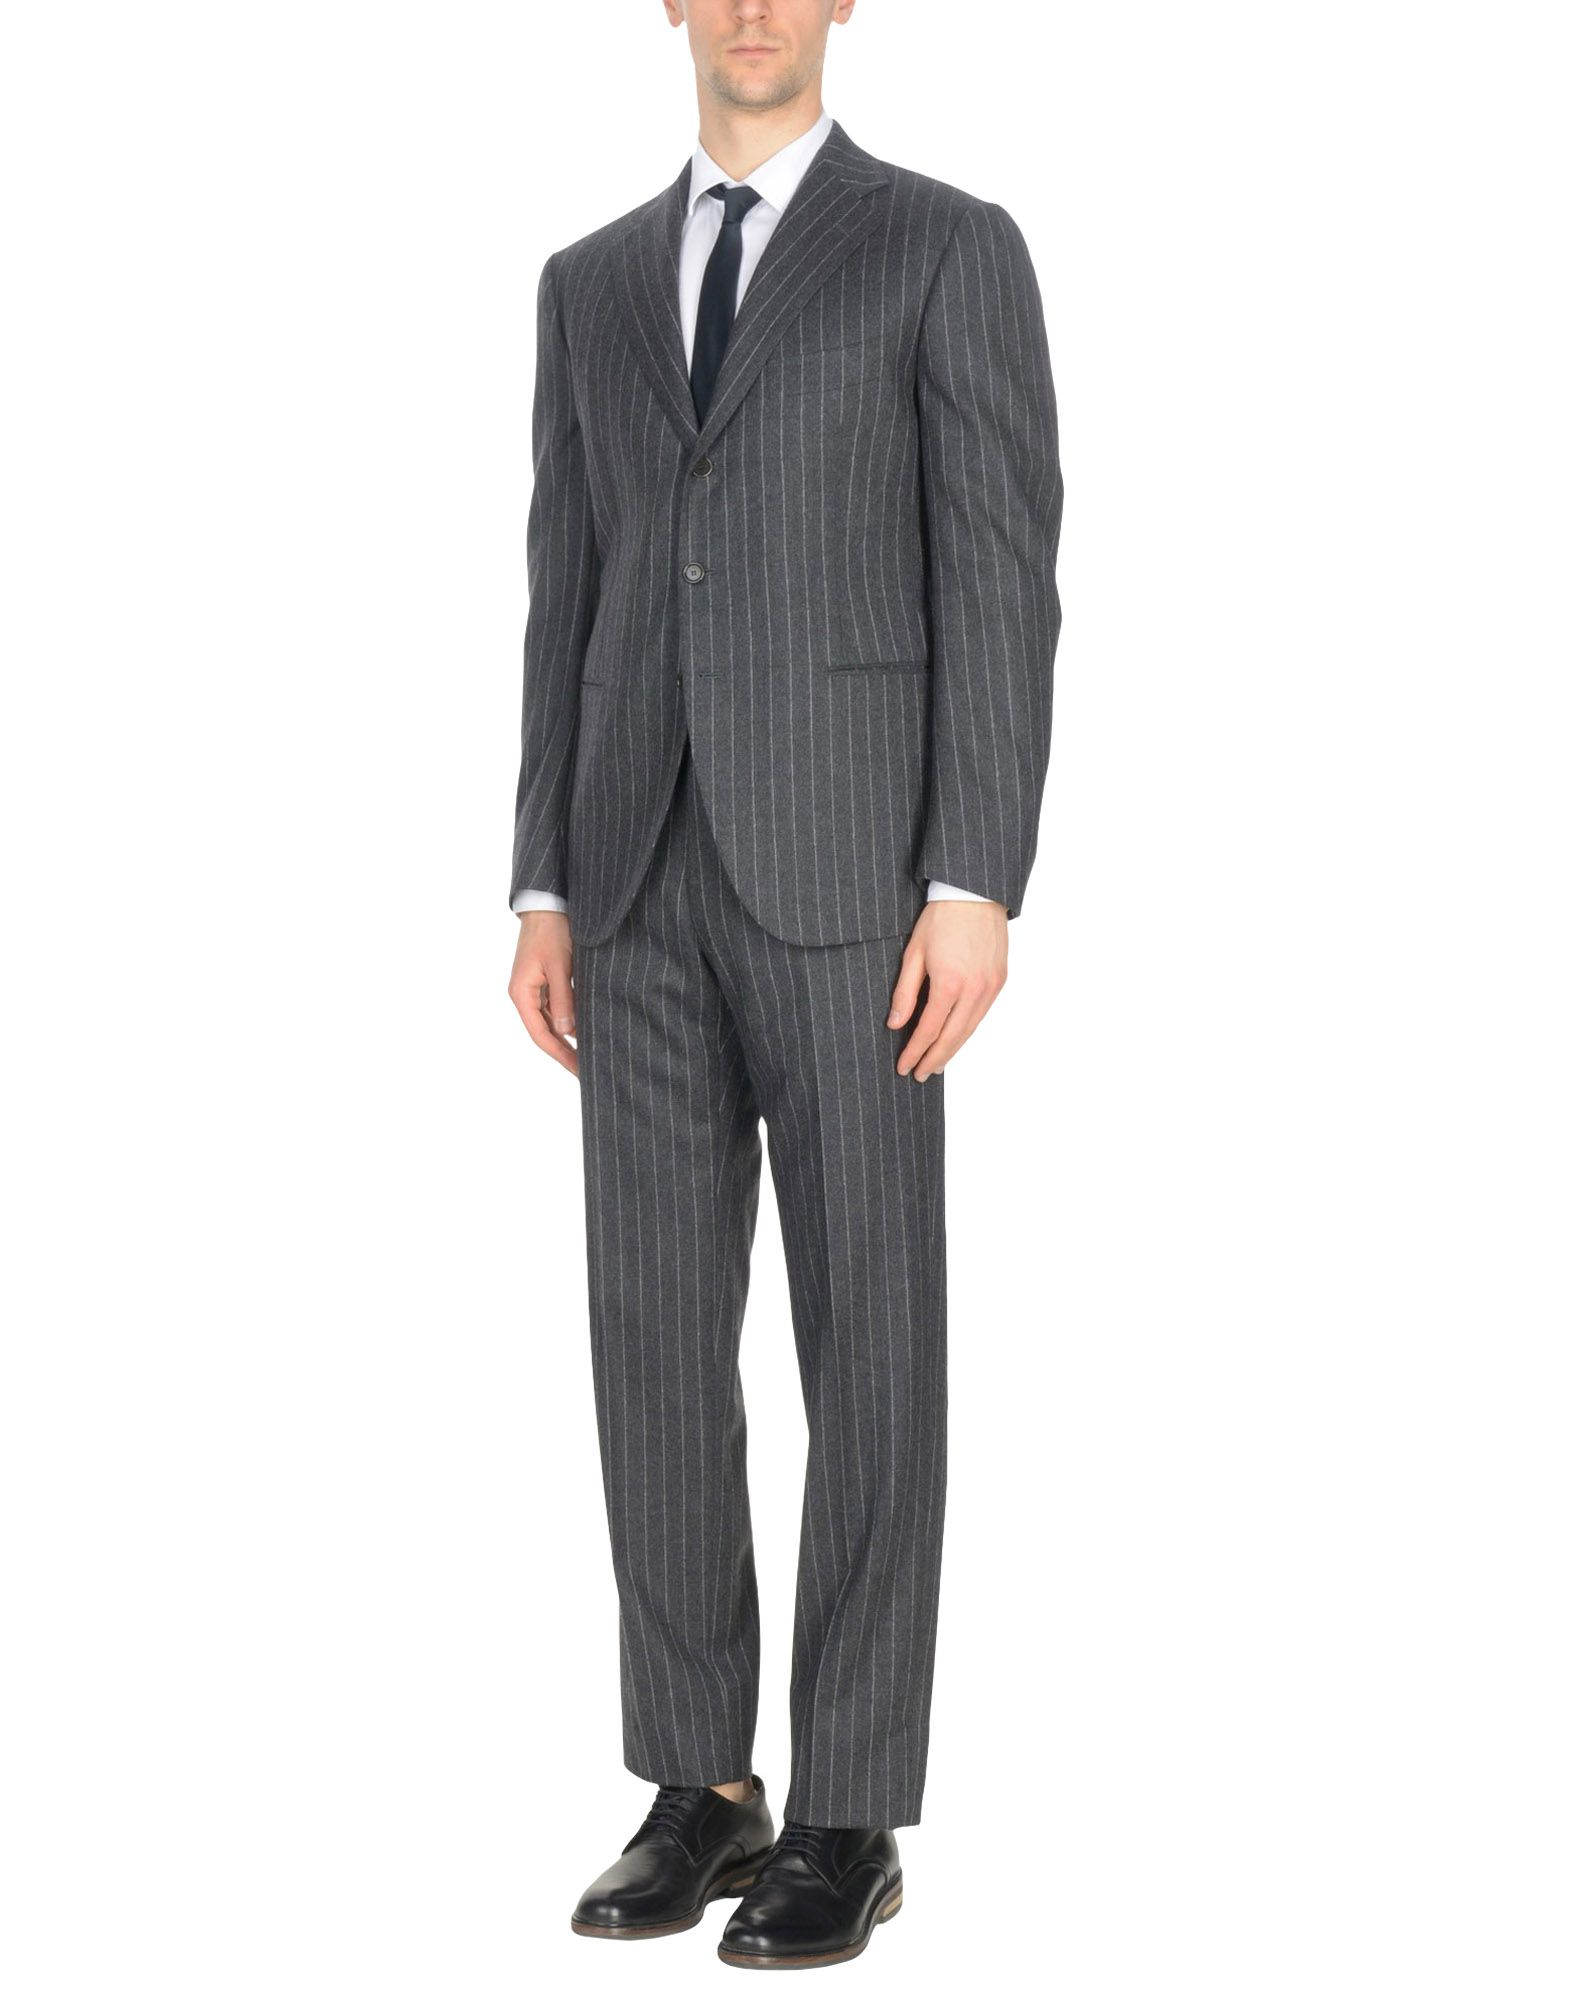 CESARE ATTOLINI Suits in Steel Grey